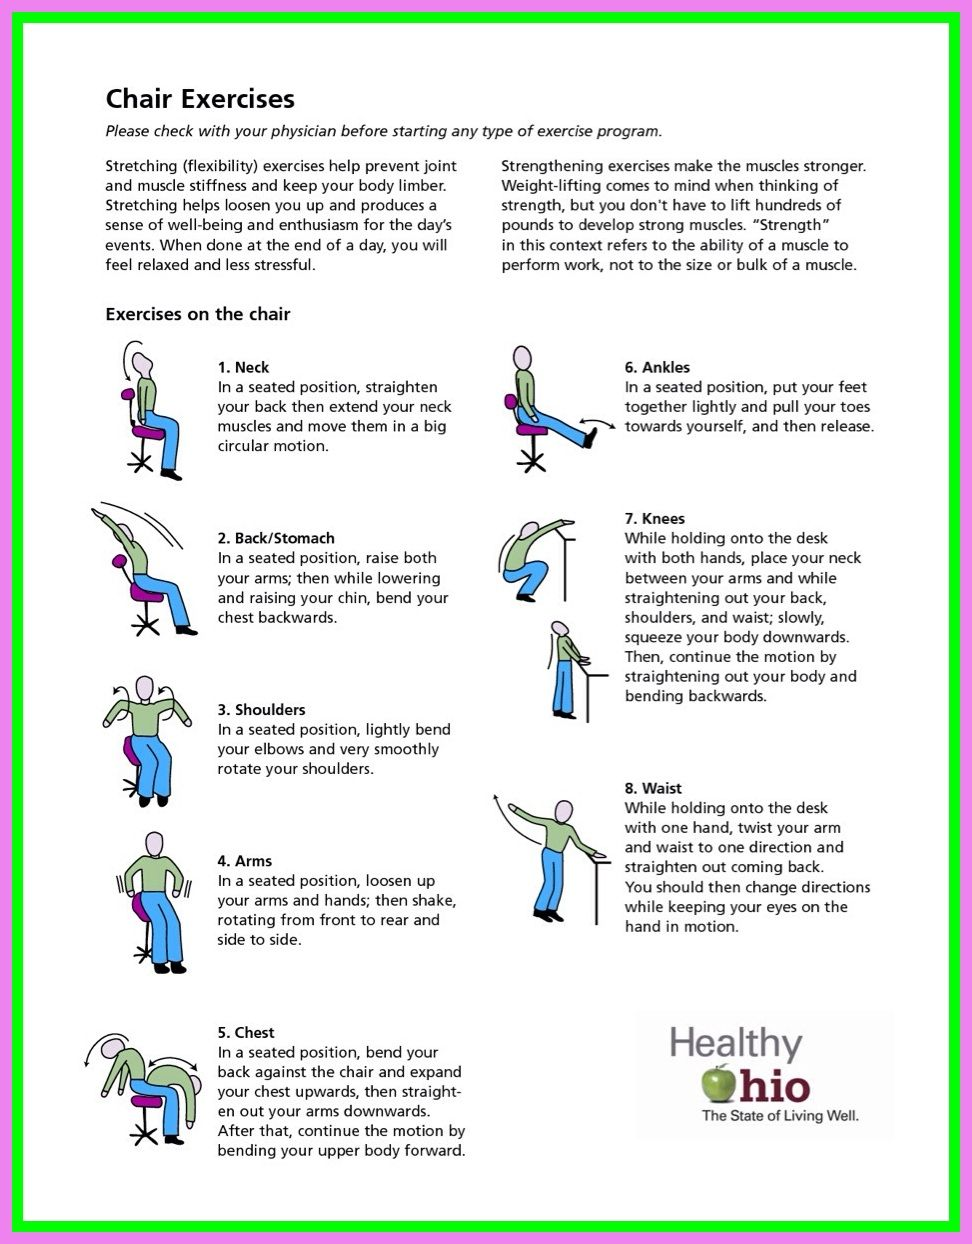 51 Reference Of Printable Chair Exercises For Elderly With Pictures In 2020 Chair Exercises Senior Fitness Exercise